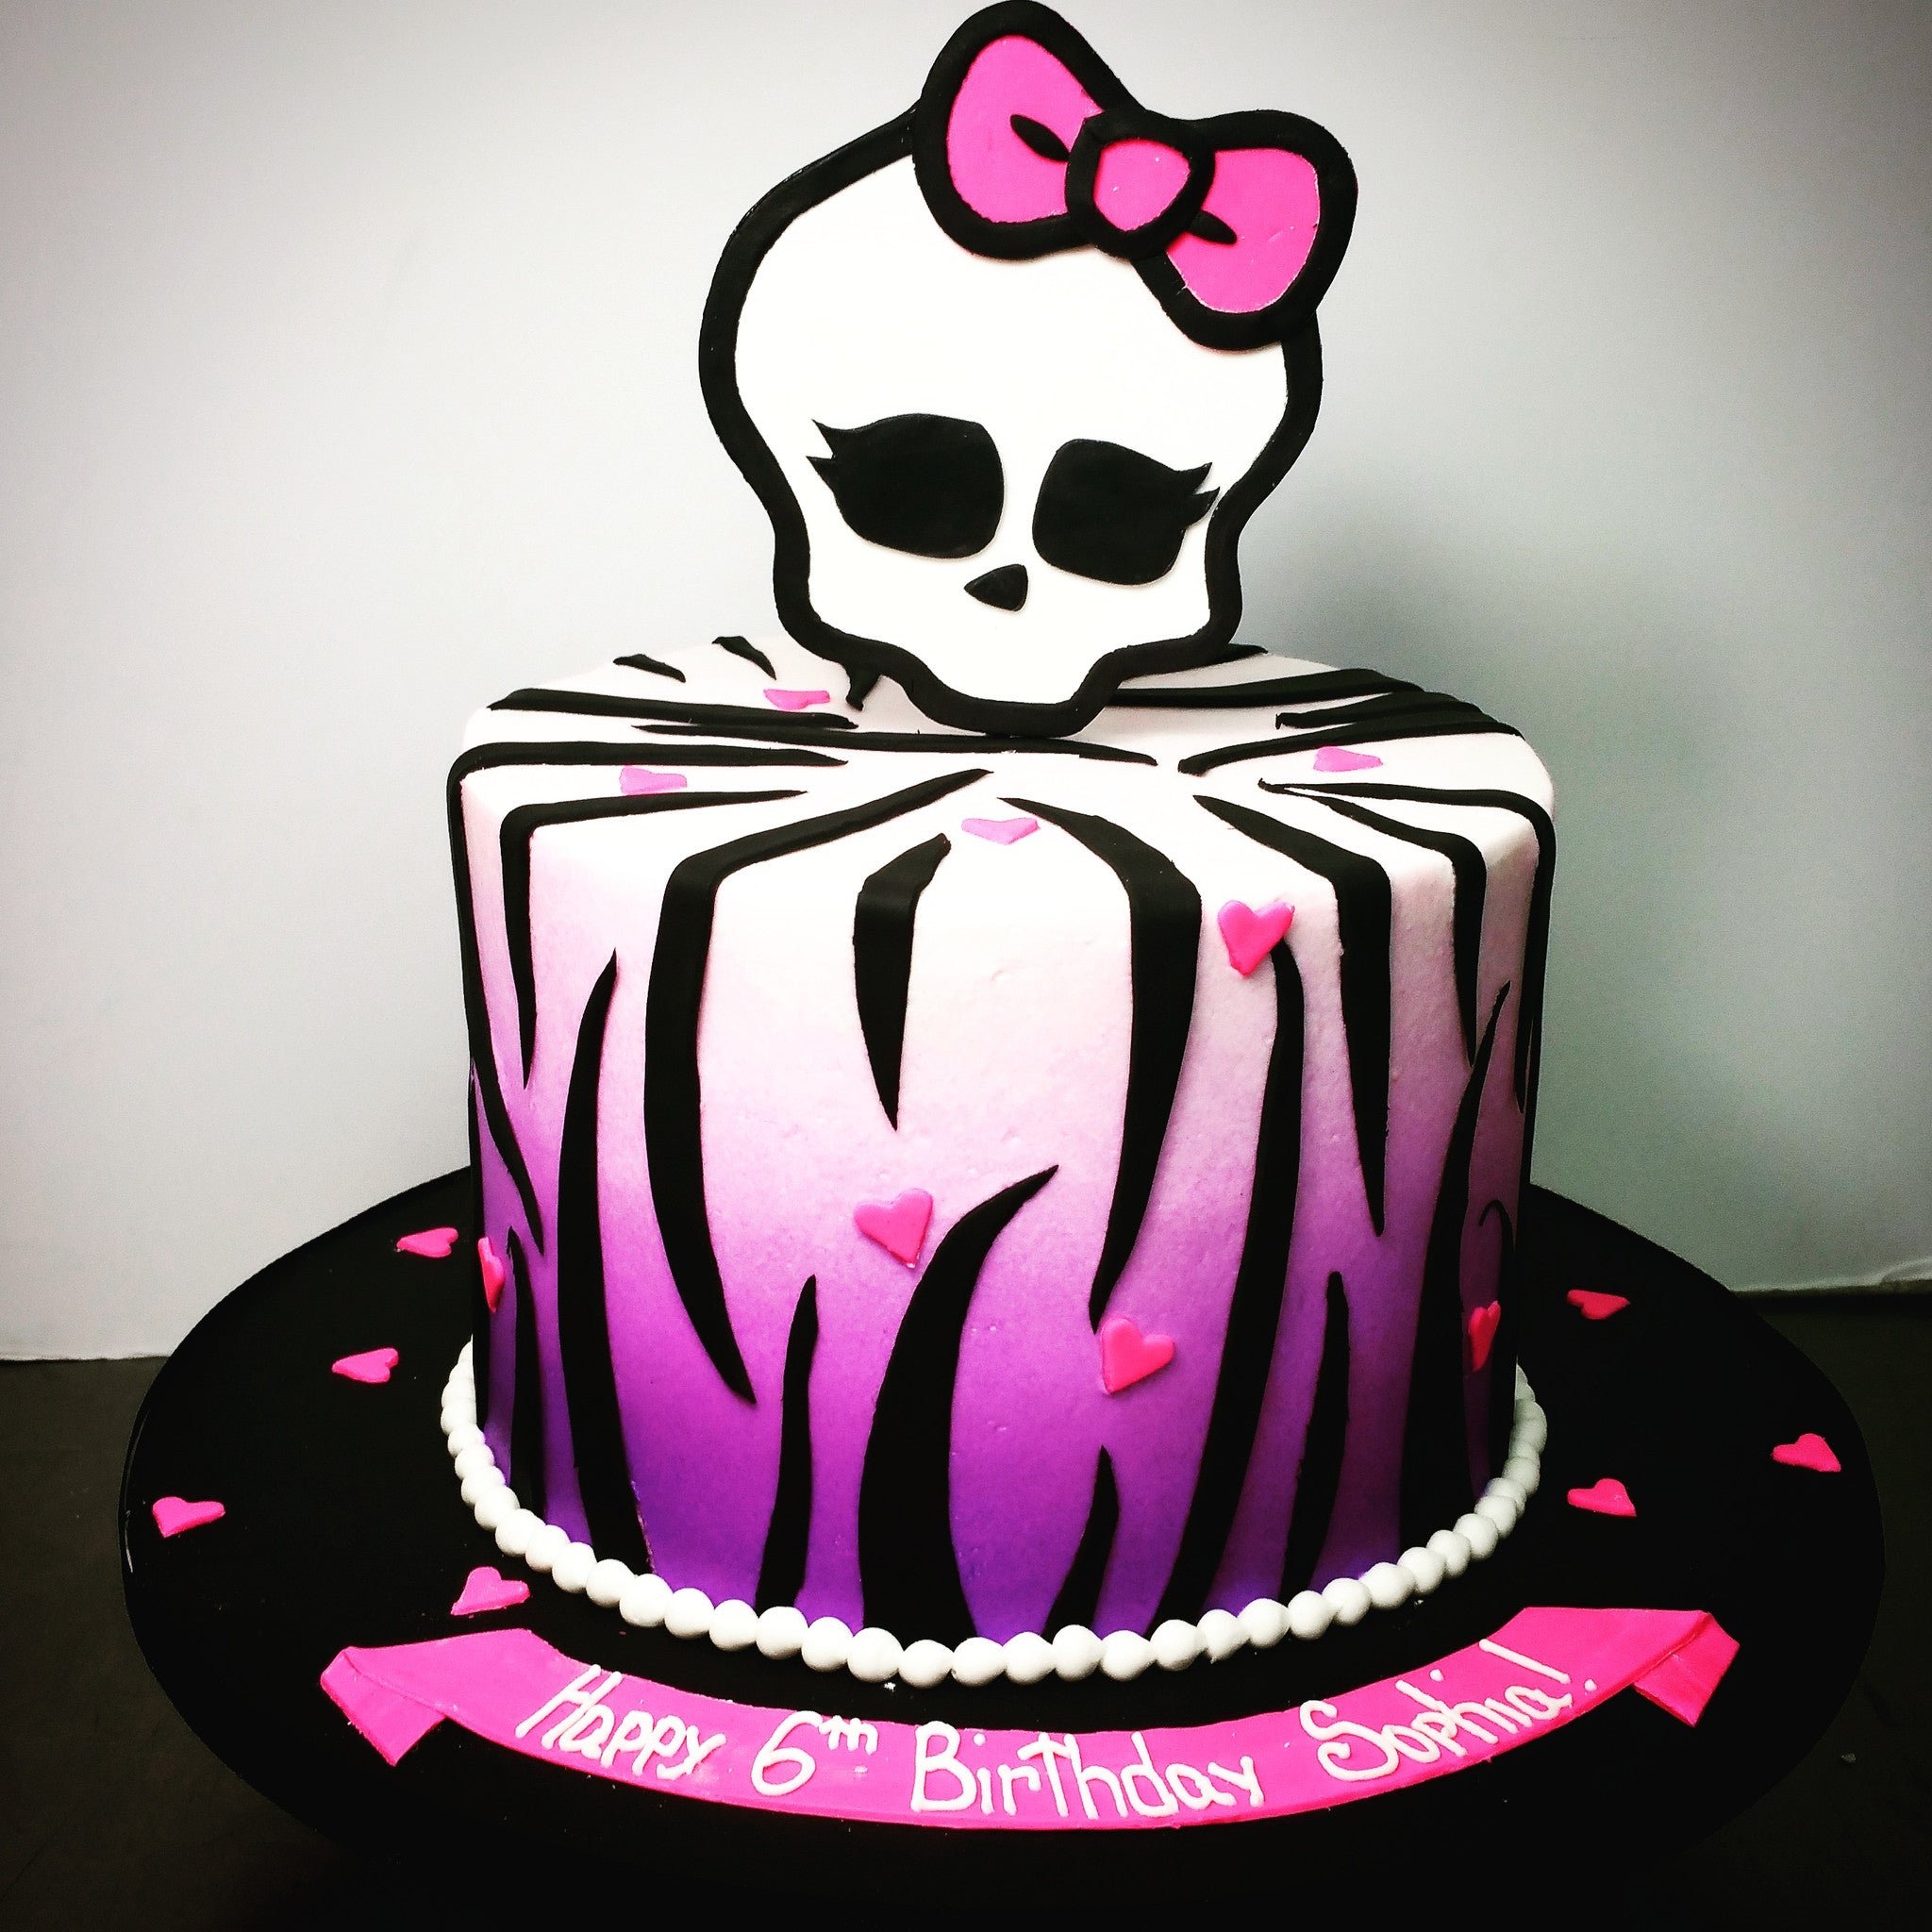 Buttercream Monster High Birthday Cake Blue Sheep Bake Shop